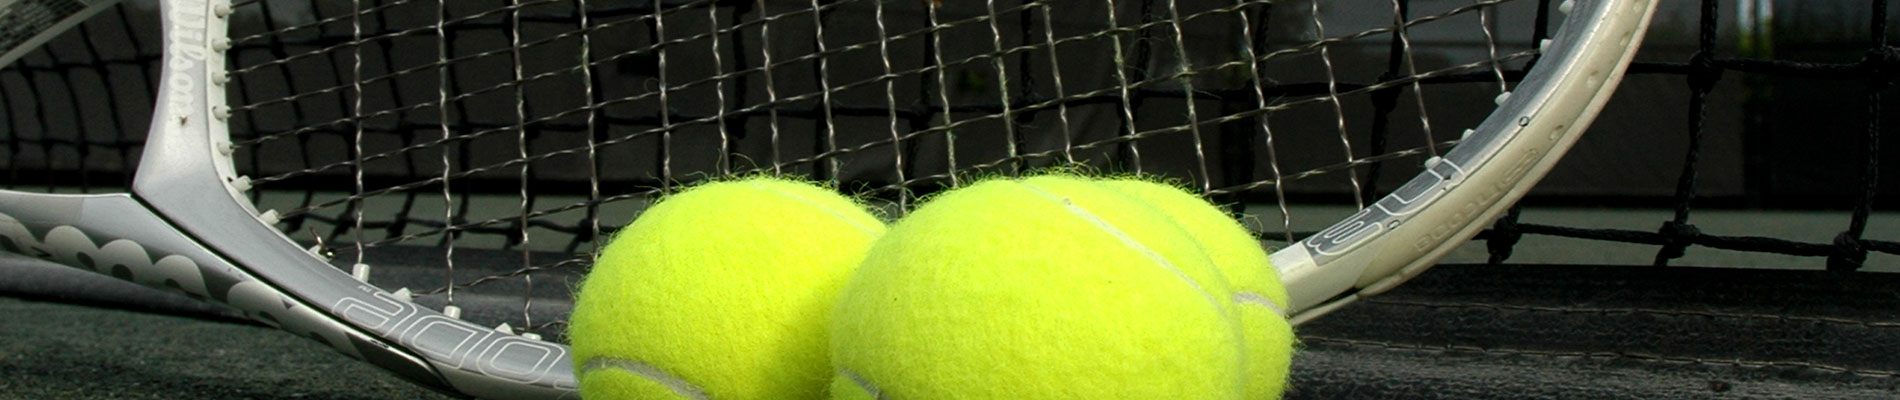 Tennis Memberships